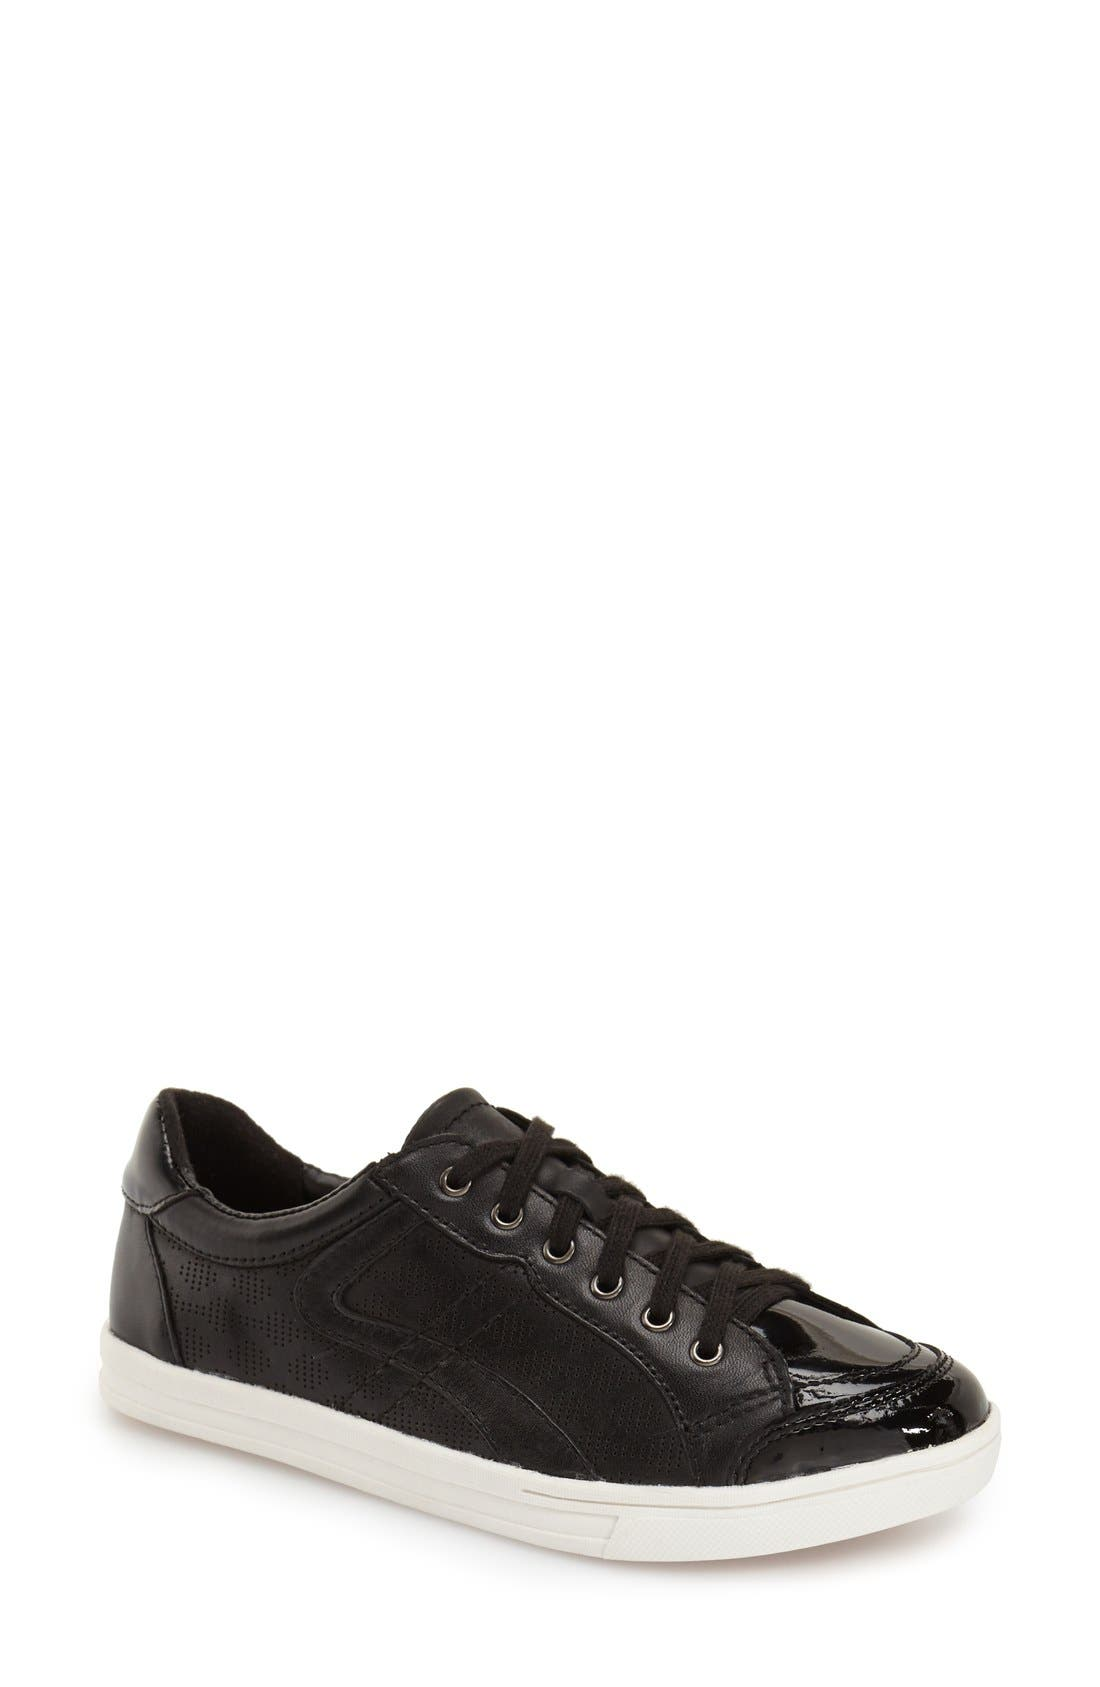 Alternate Image 1 Selected - Earth® 'Quince' Leather Sneaker (Women)